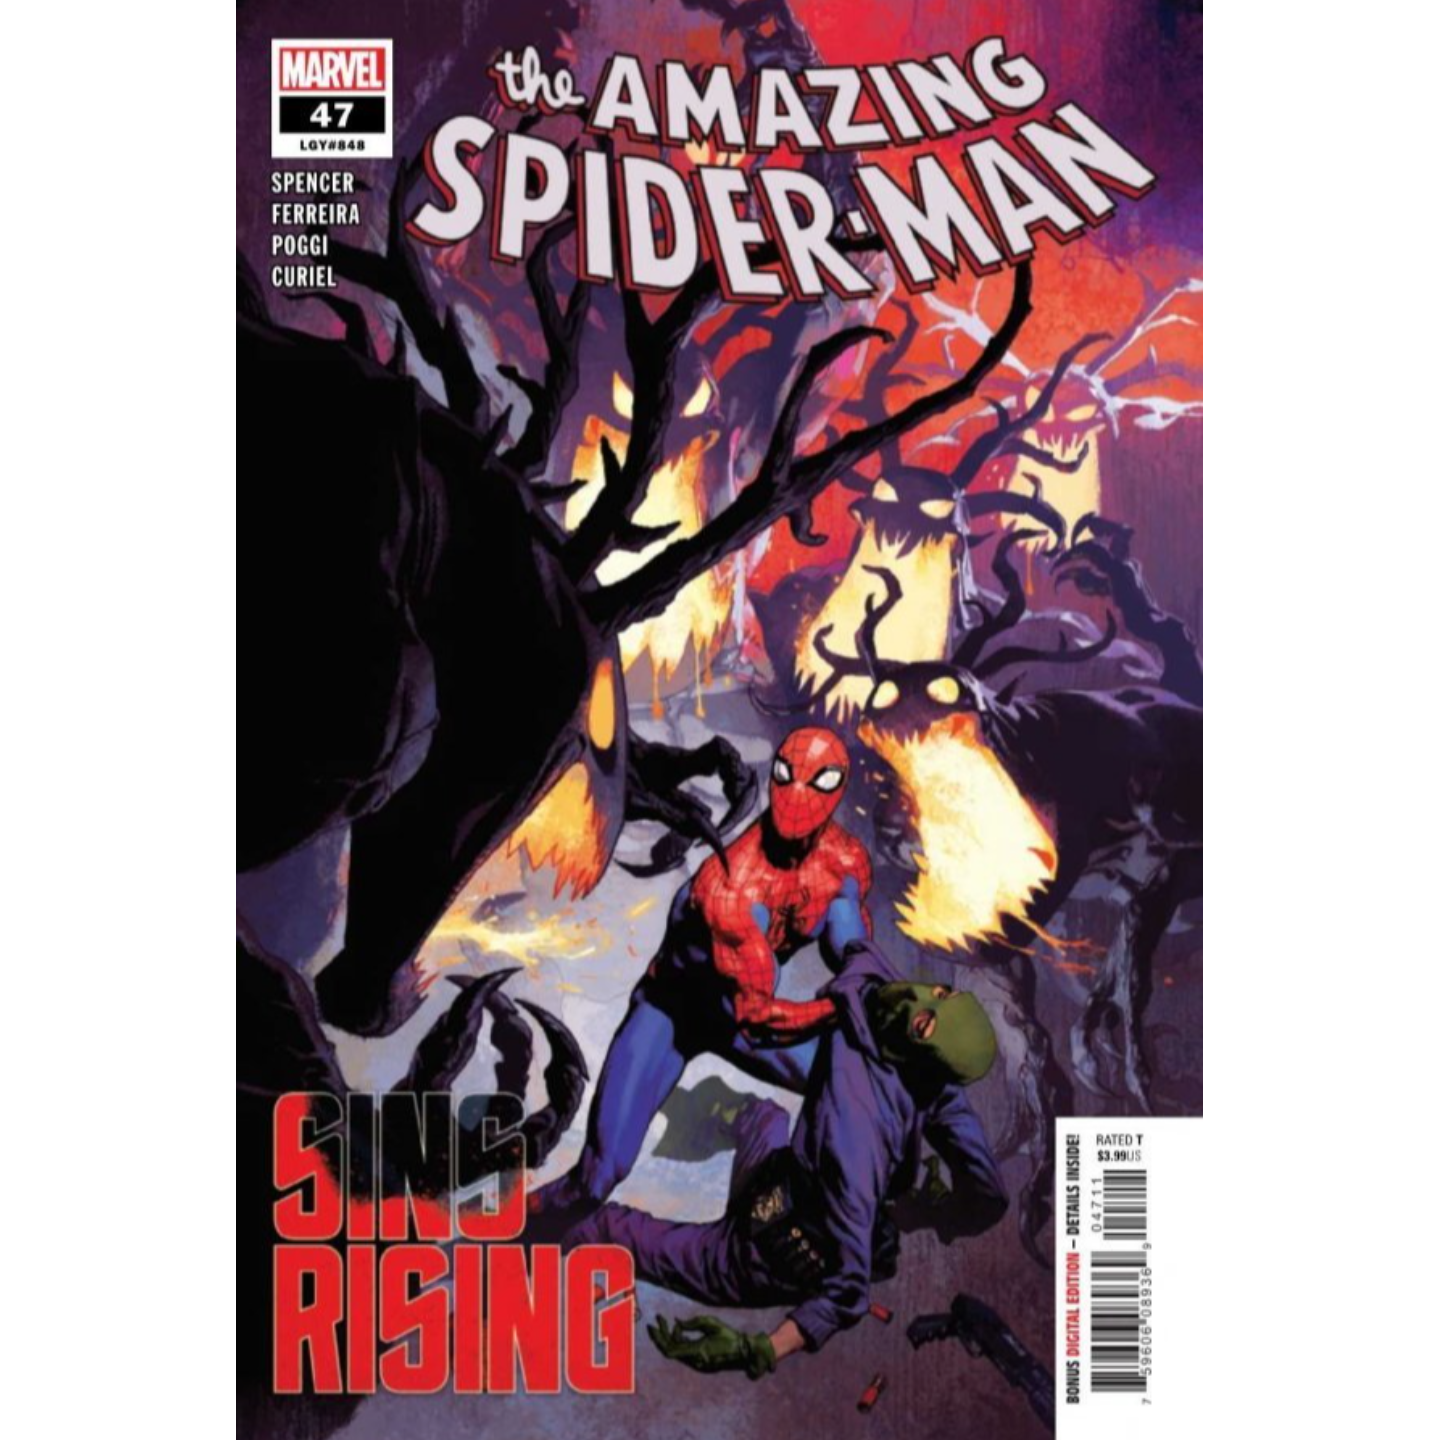 AMAZING SPIDER-MAN #47